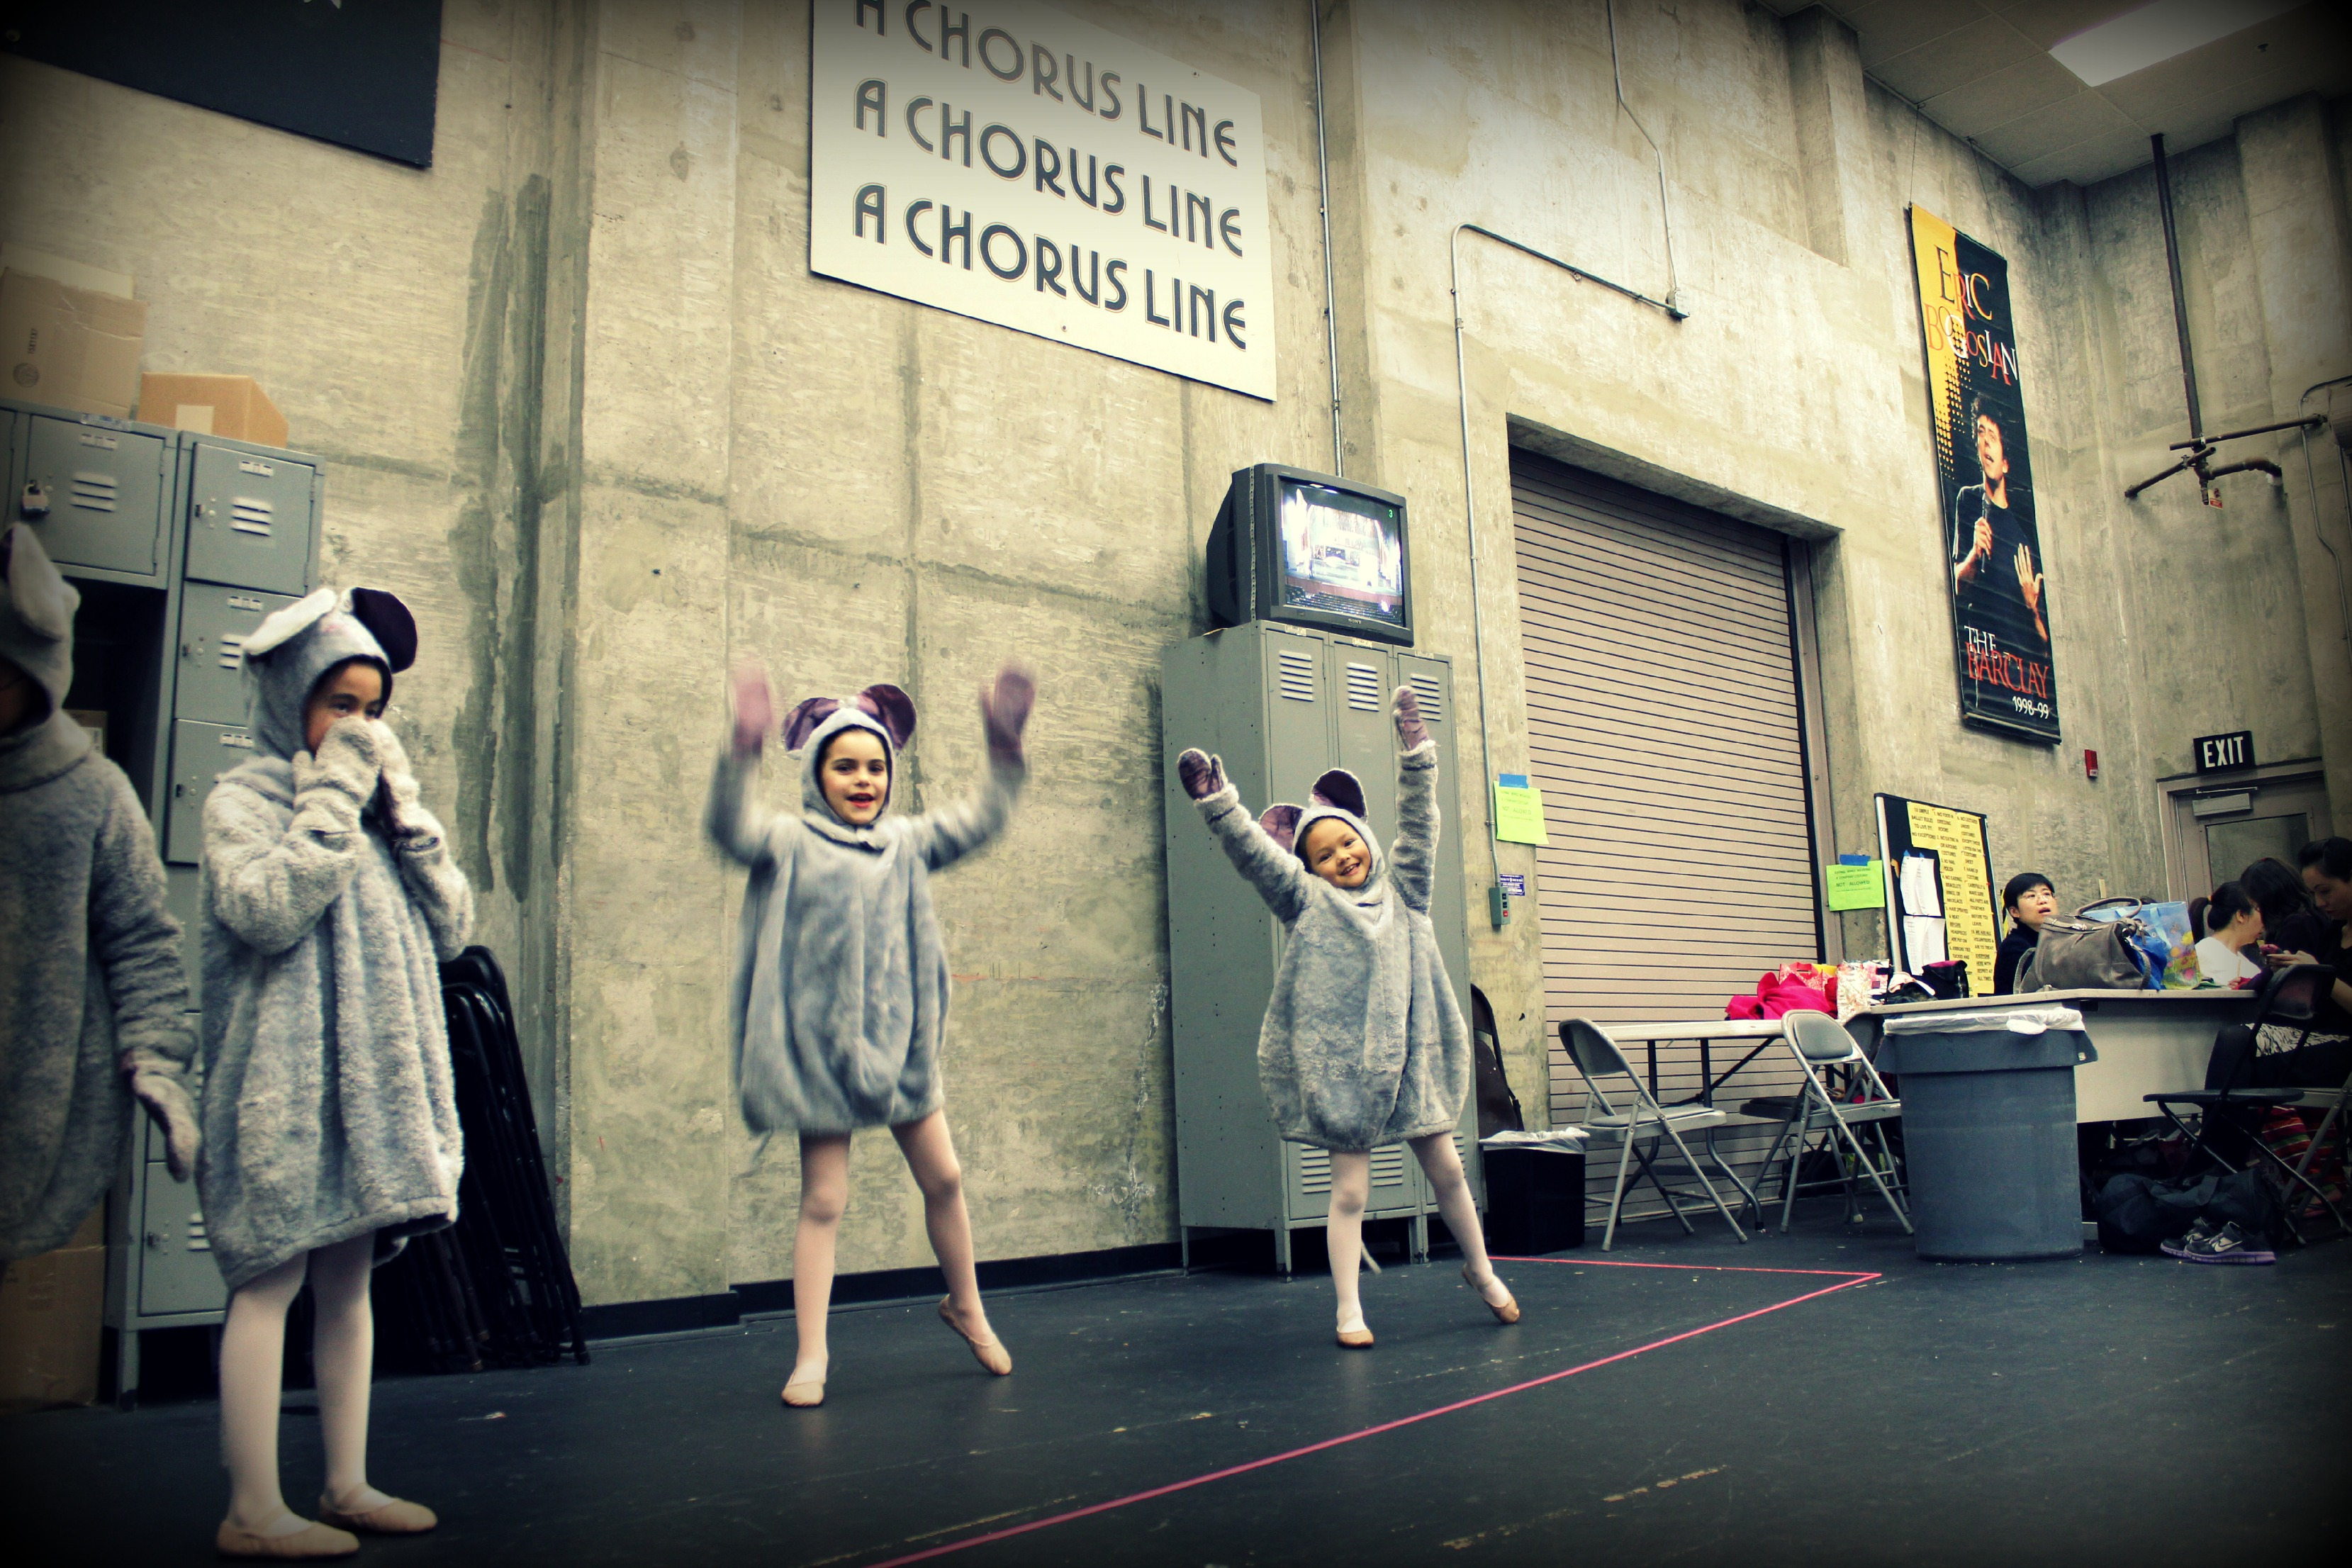 121213 Backstage dress rehearsal Little Mice Nutcracker Ballet Tchaikovsky